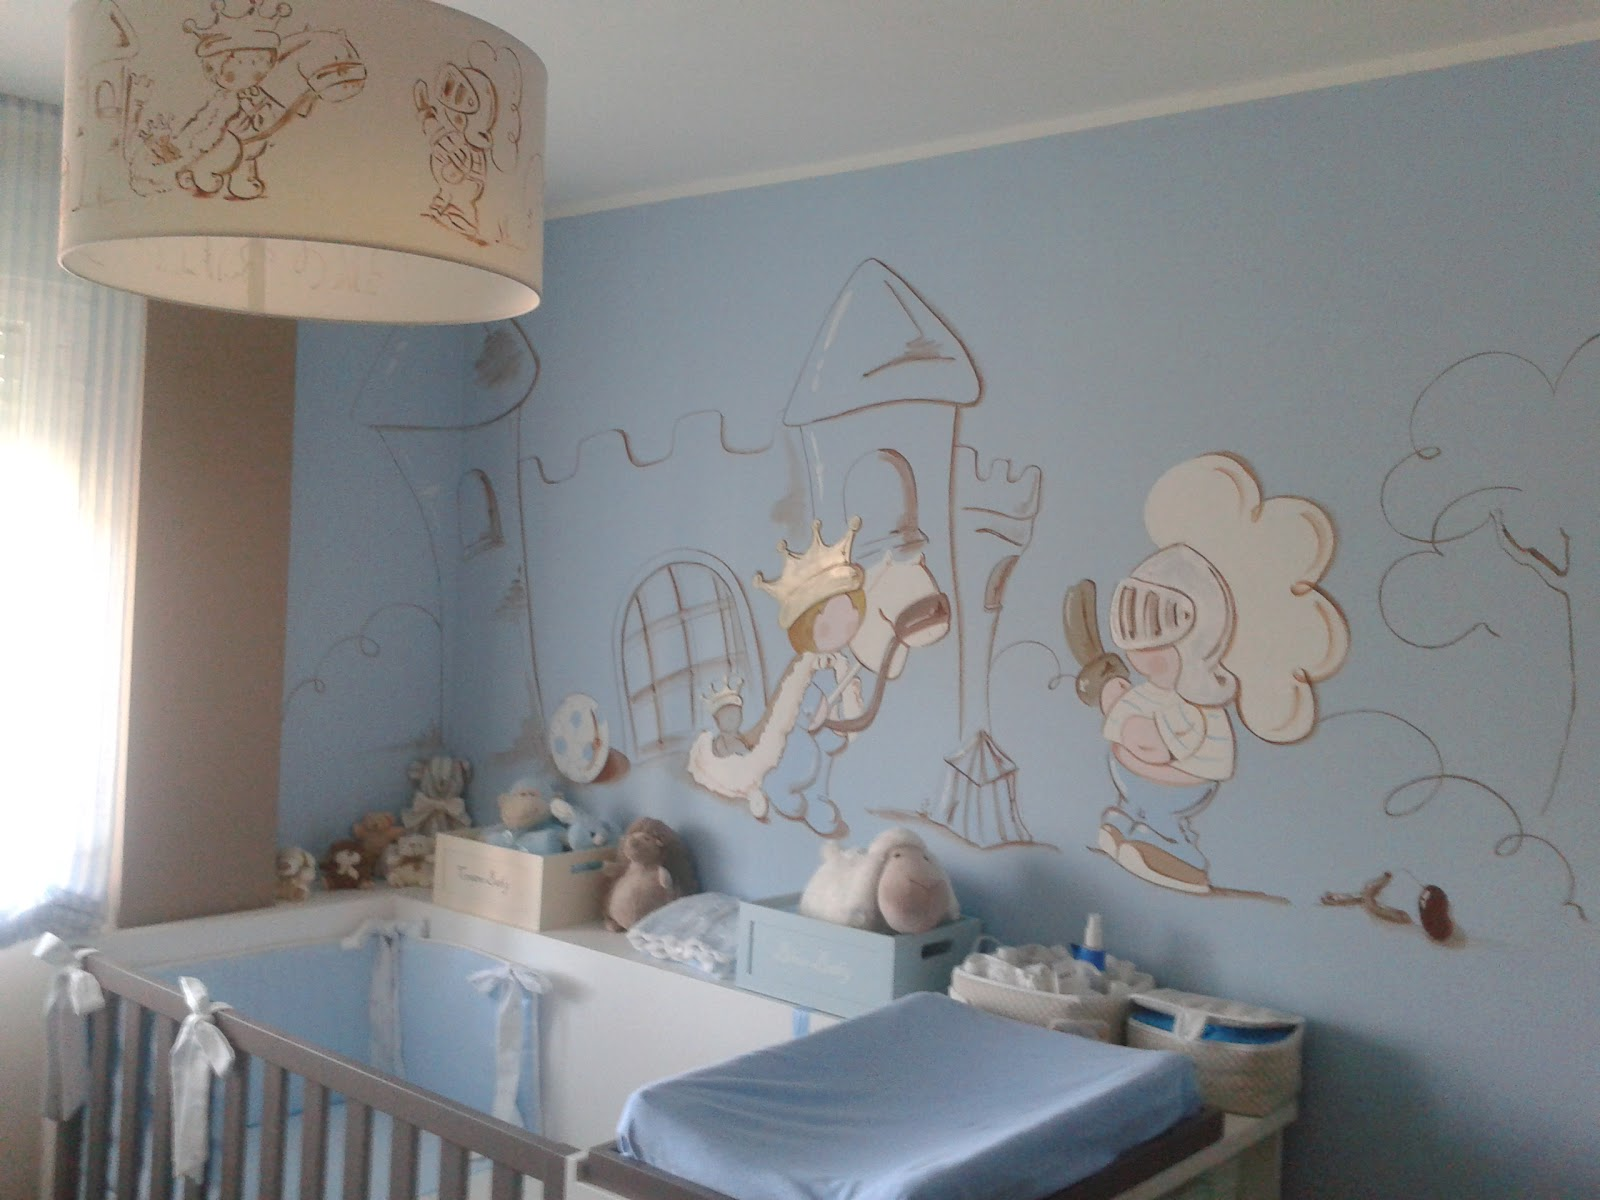 deco chambre b b peinture murale chambre enfant prince avec son ch teau. Black Bedroom Furniture Sets. Home Design Ideas